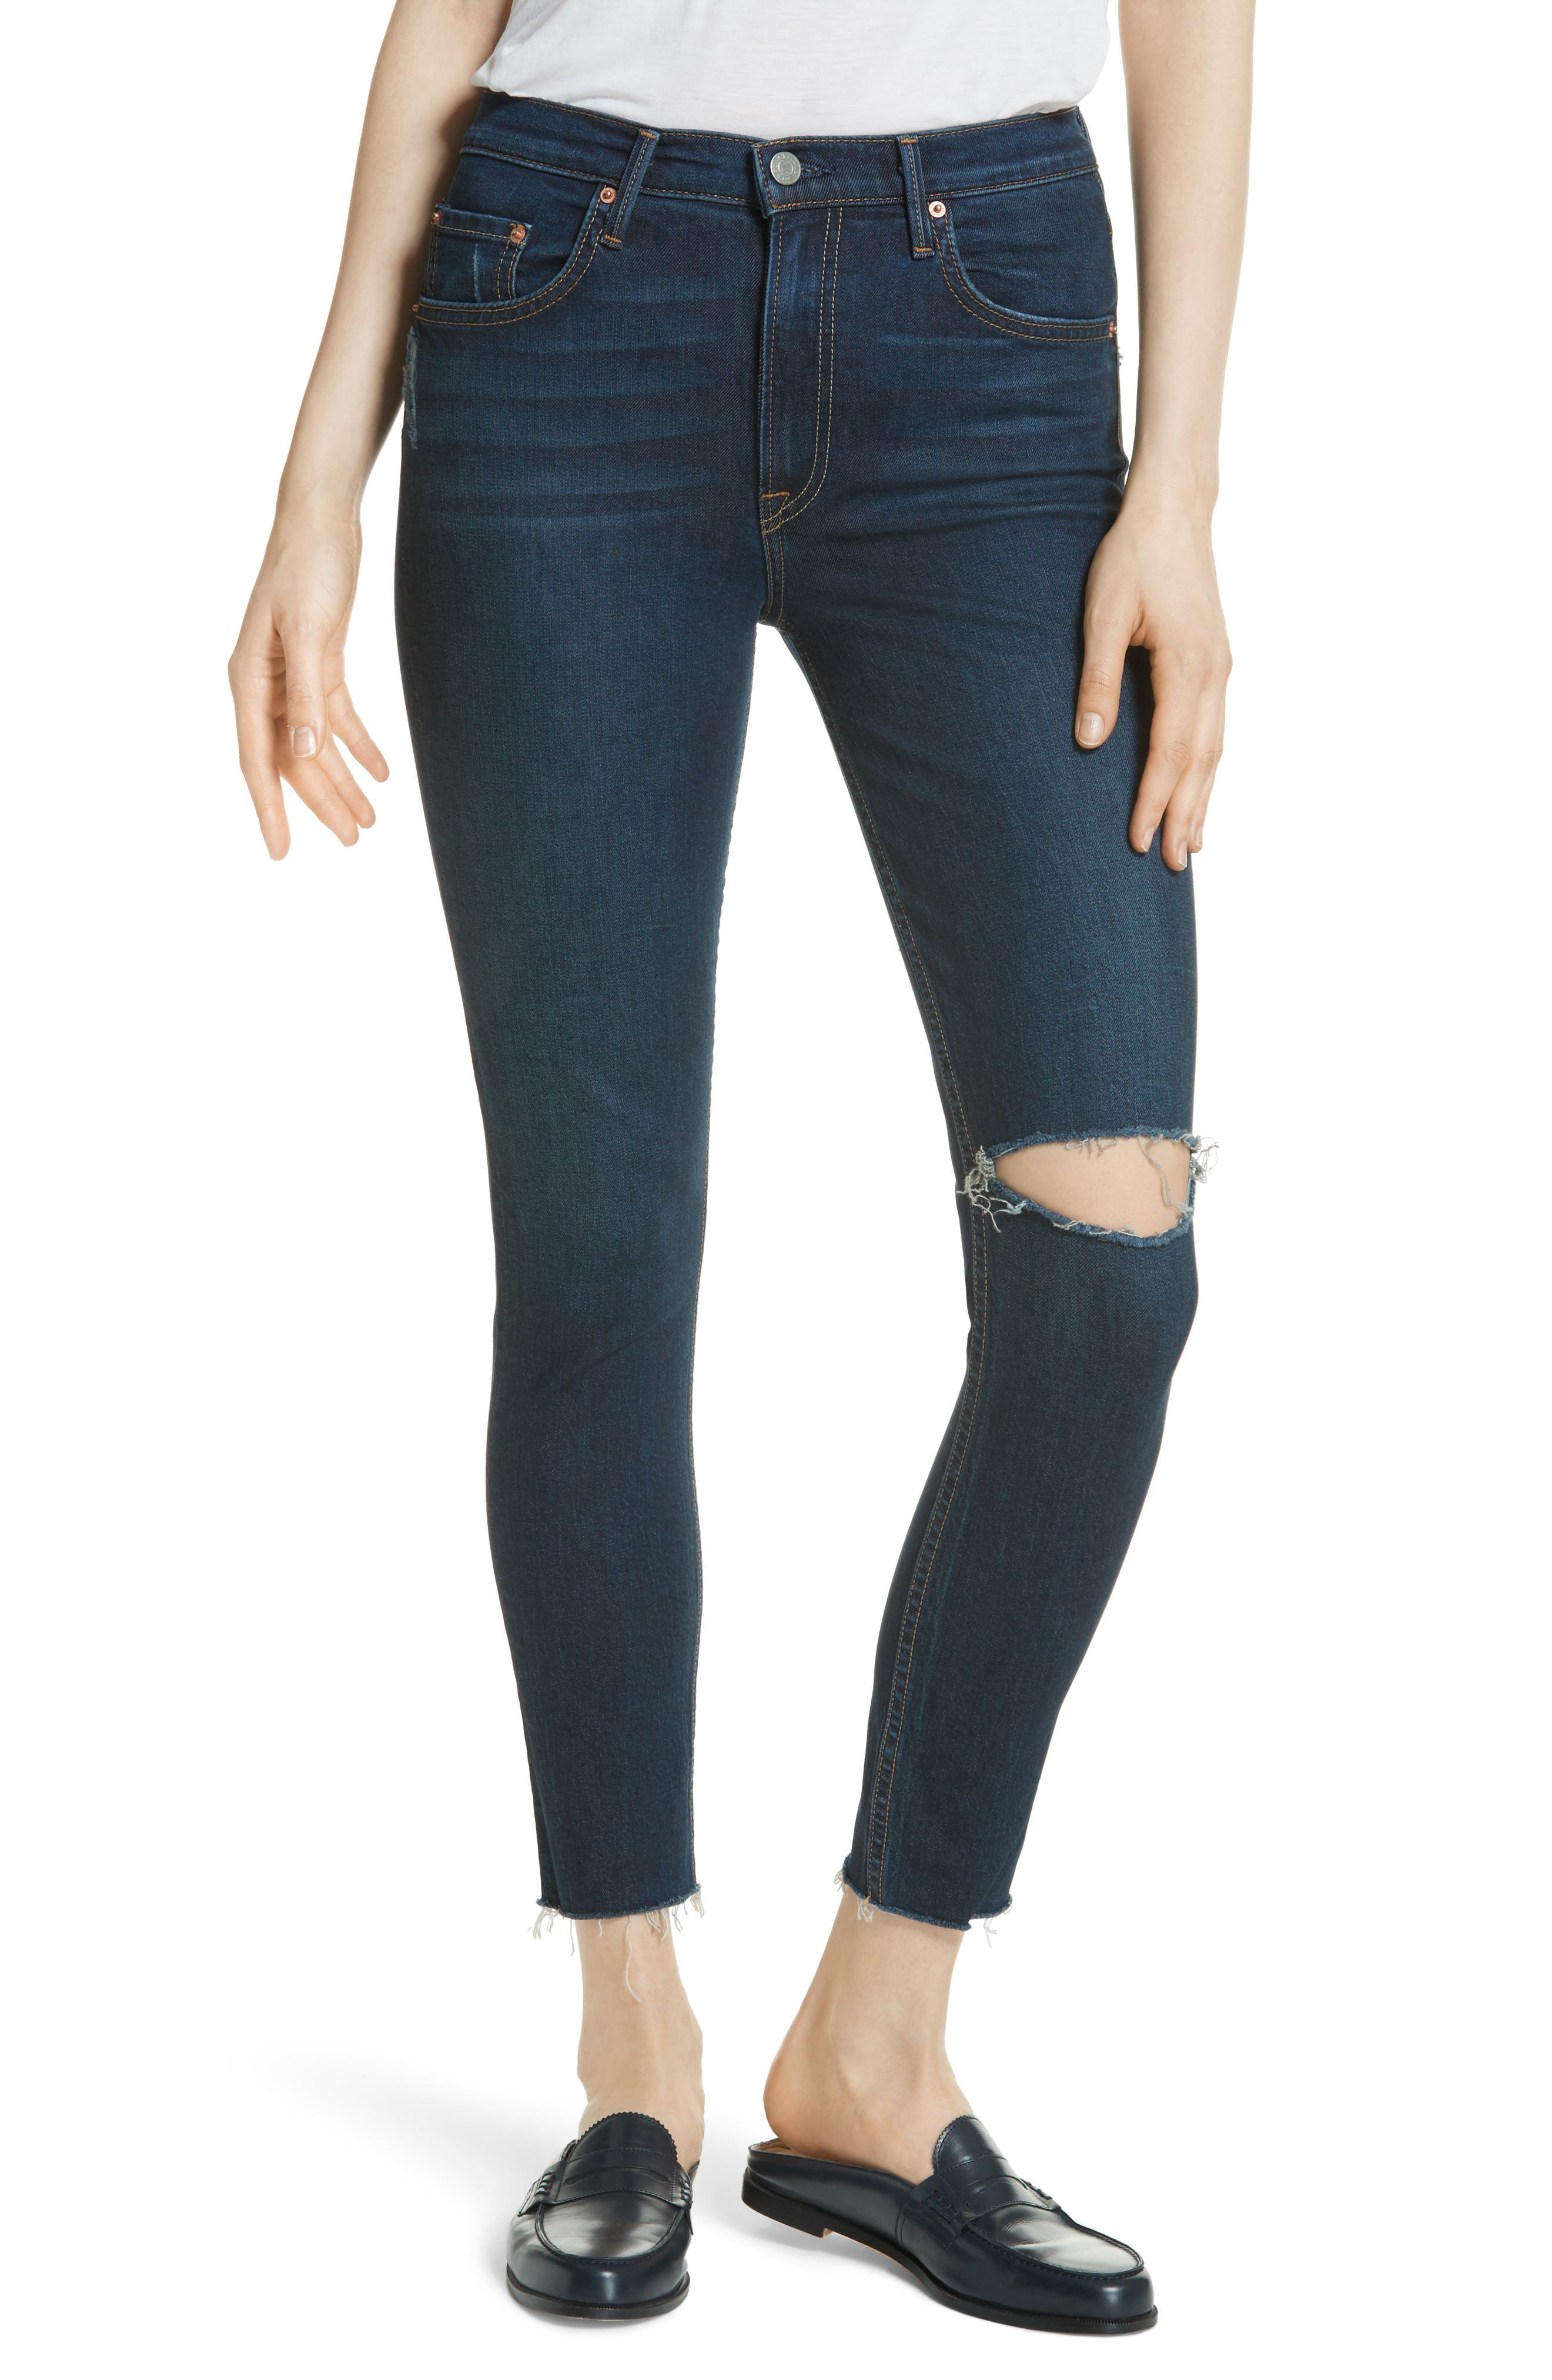 Kendall Super Stretch High Waist Skinny Jeans,                         Main,                         color, Marbled G526